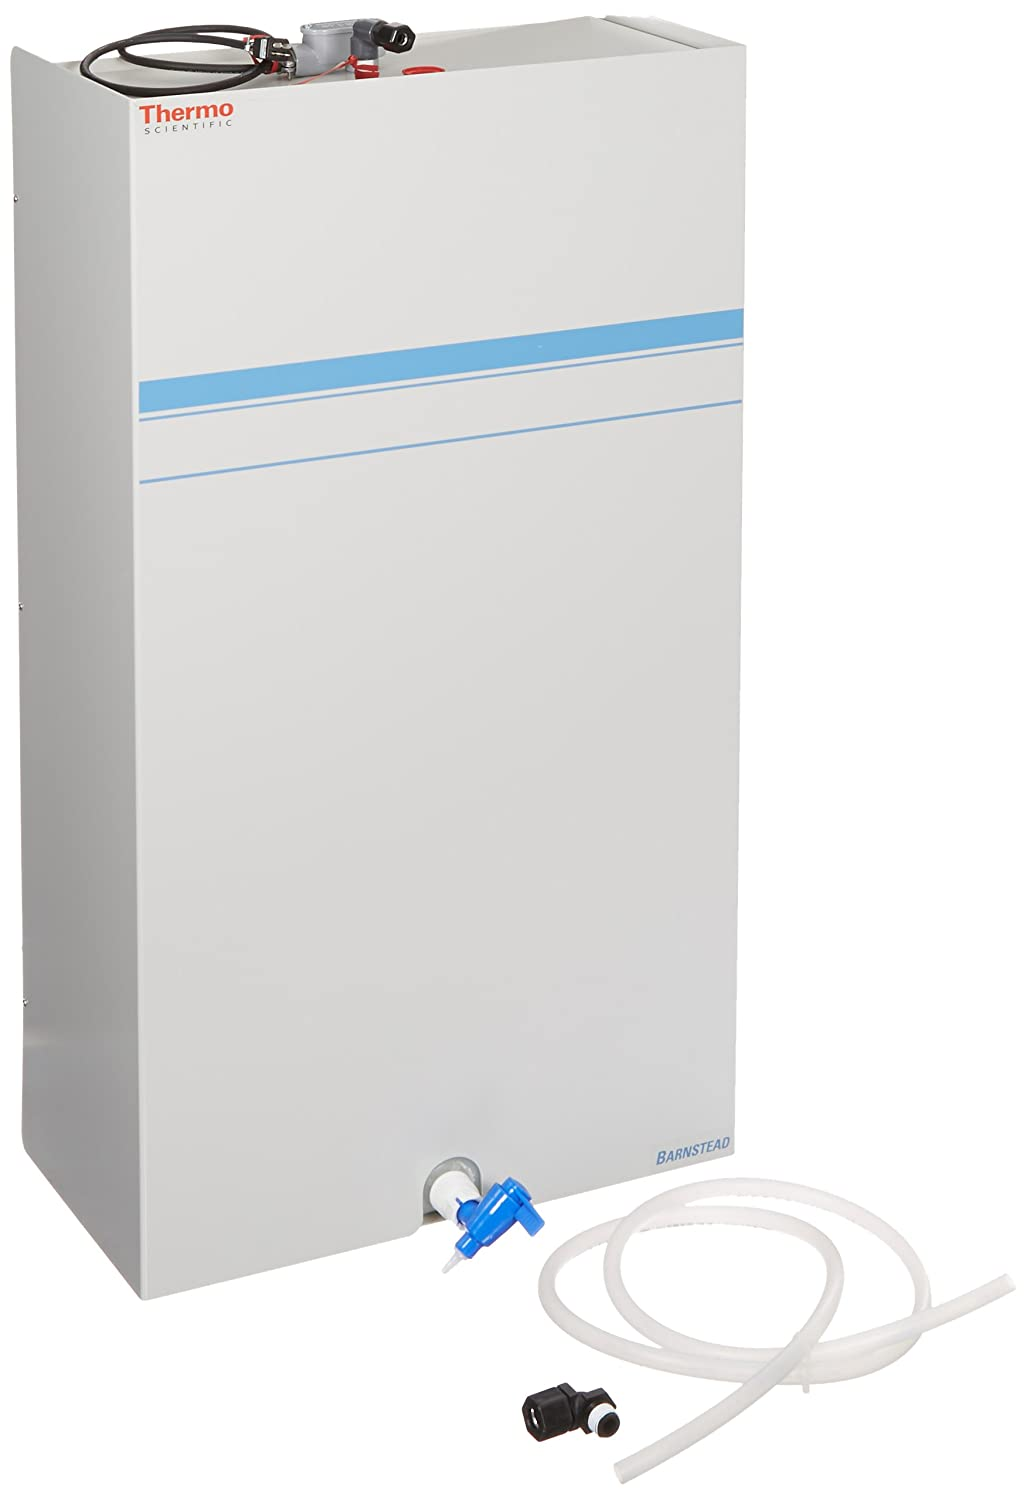 D2622-USED  - Thermo Scientific Barnstead Reverse Osmosis Storage Reservoir  100L Capacity